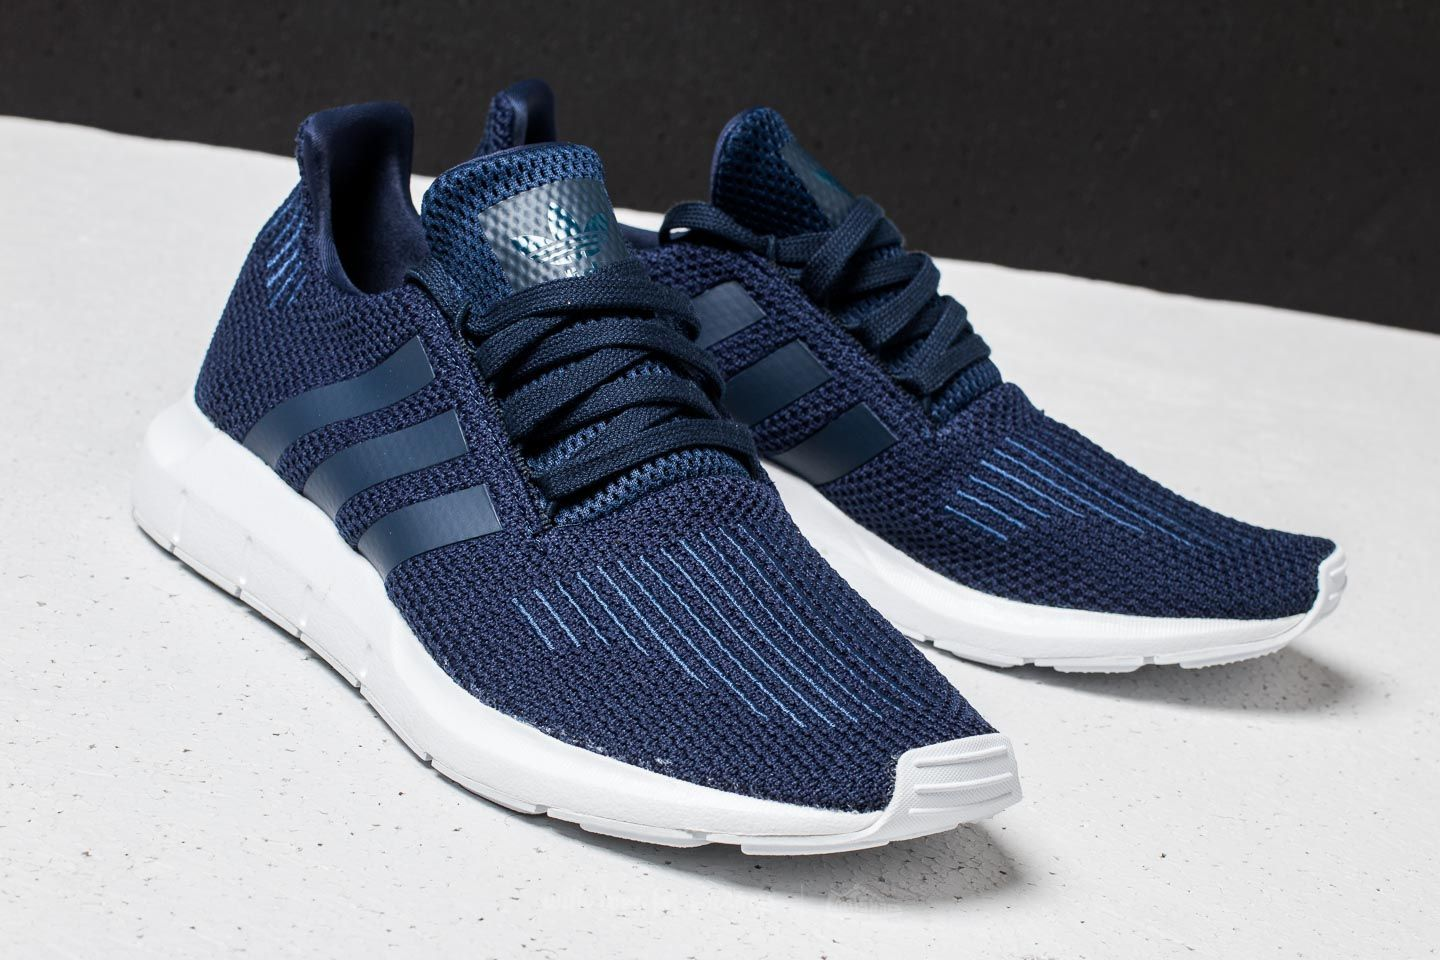 adidas Swift Run Collegiate Navy  Collegiate Navy  Ftw White in 2019 ... 26b8073df2